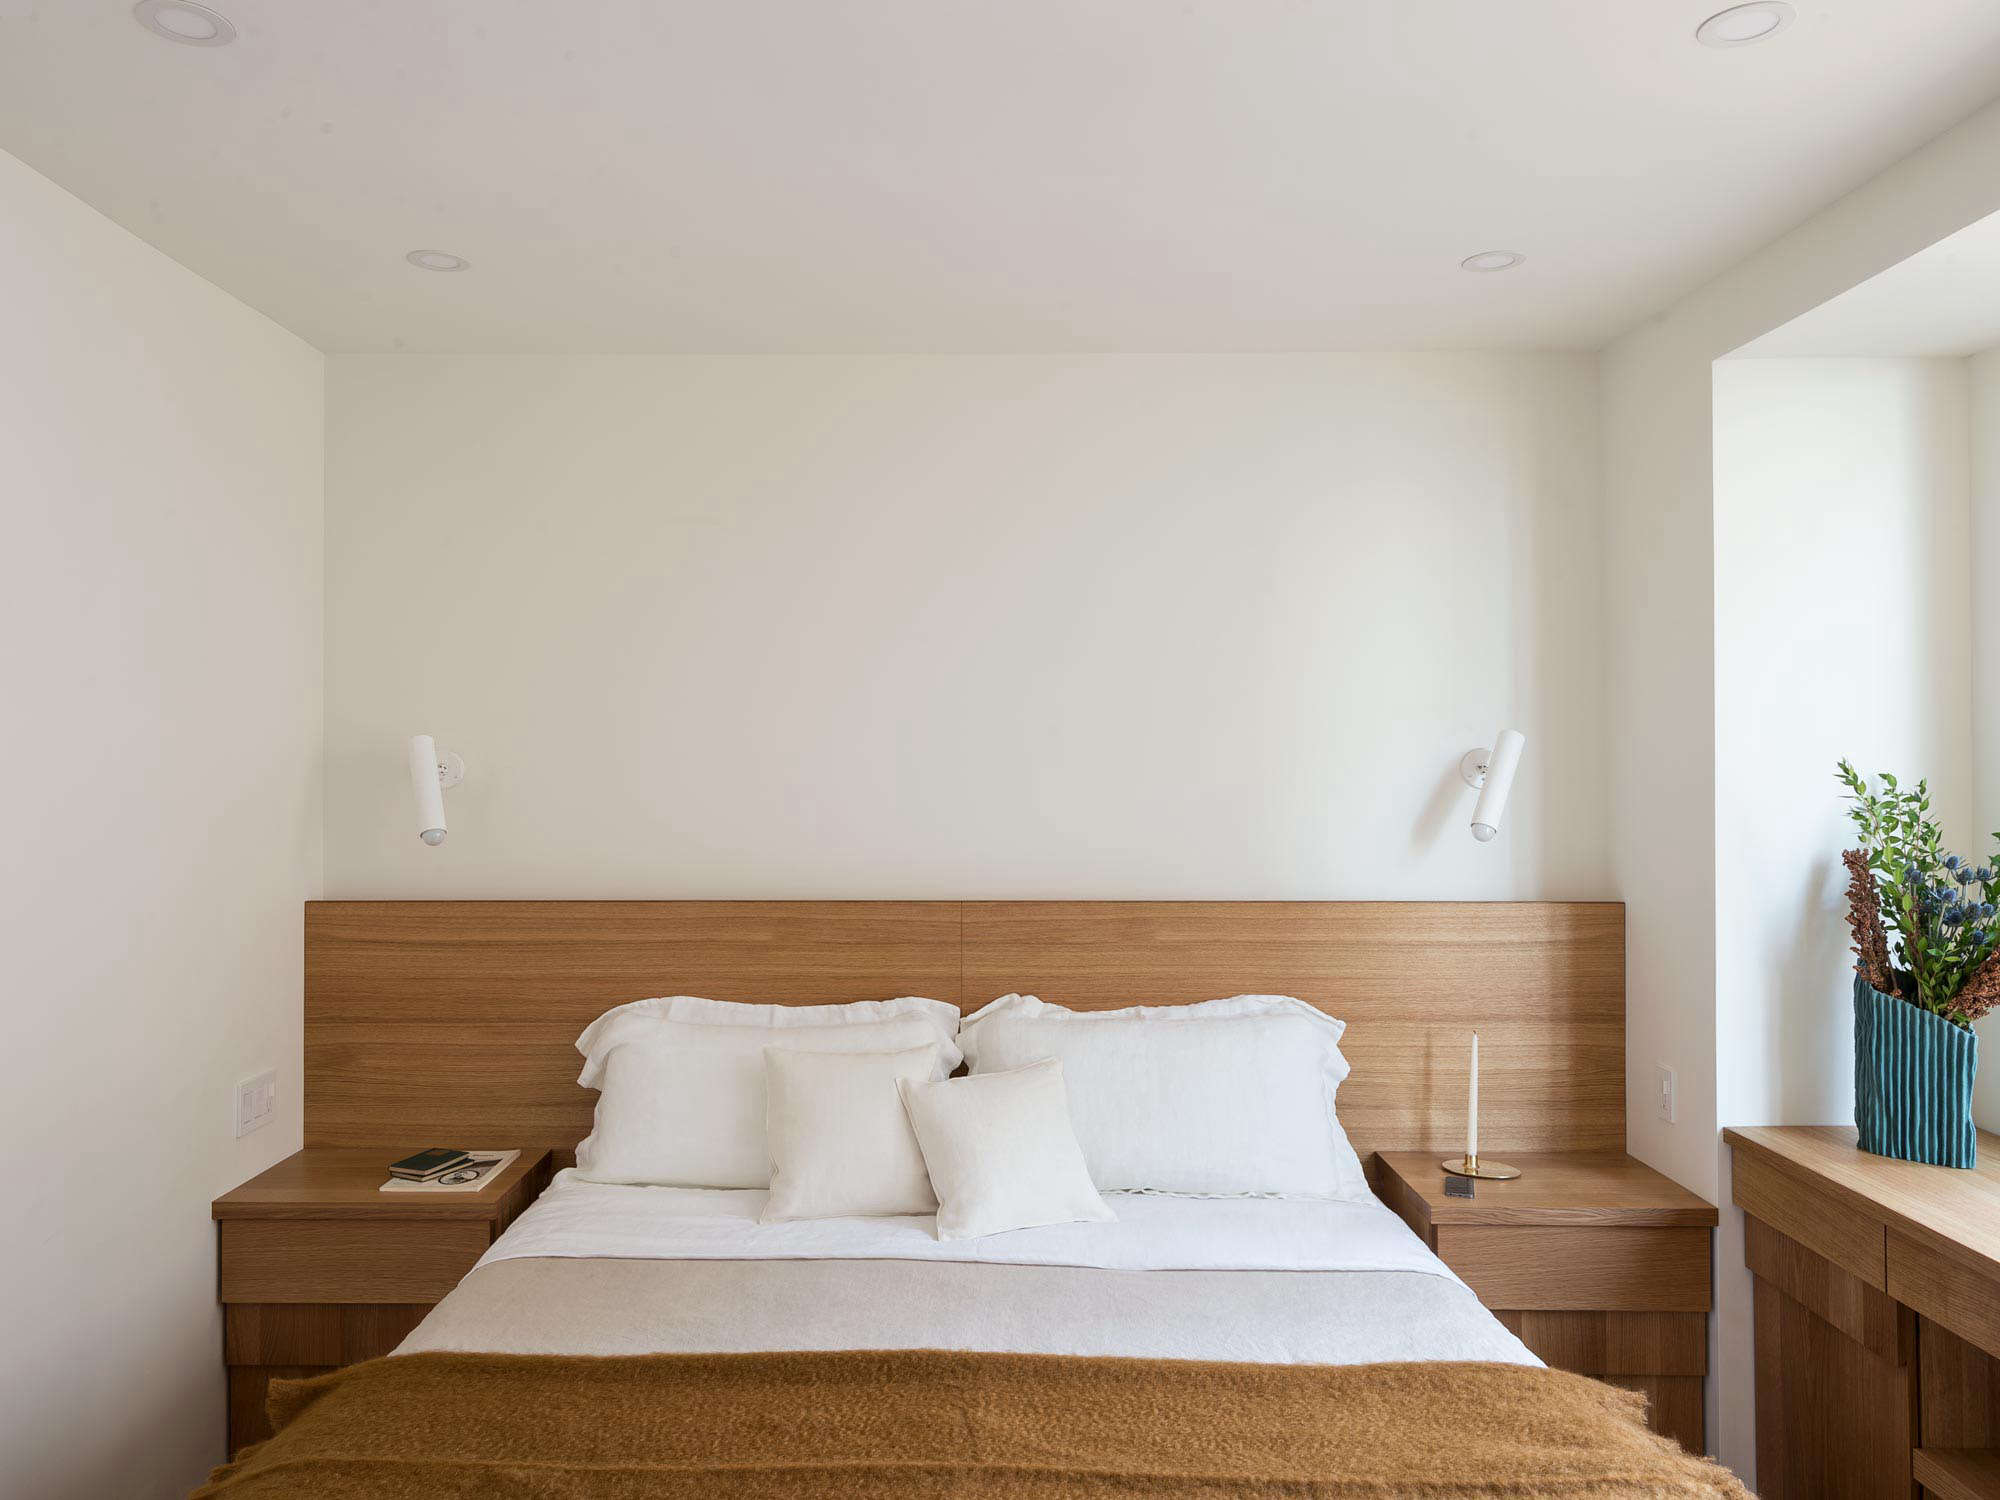 In a small apartment, continuity works well: The architects carried overthe oak millwork in the 12-by-13-foot bedroom, which includes a headboard with built-in side tables.Thesconces are a 1960s design, the2300 CF by Jacques Biny for Lita.